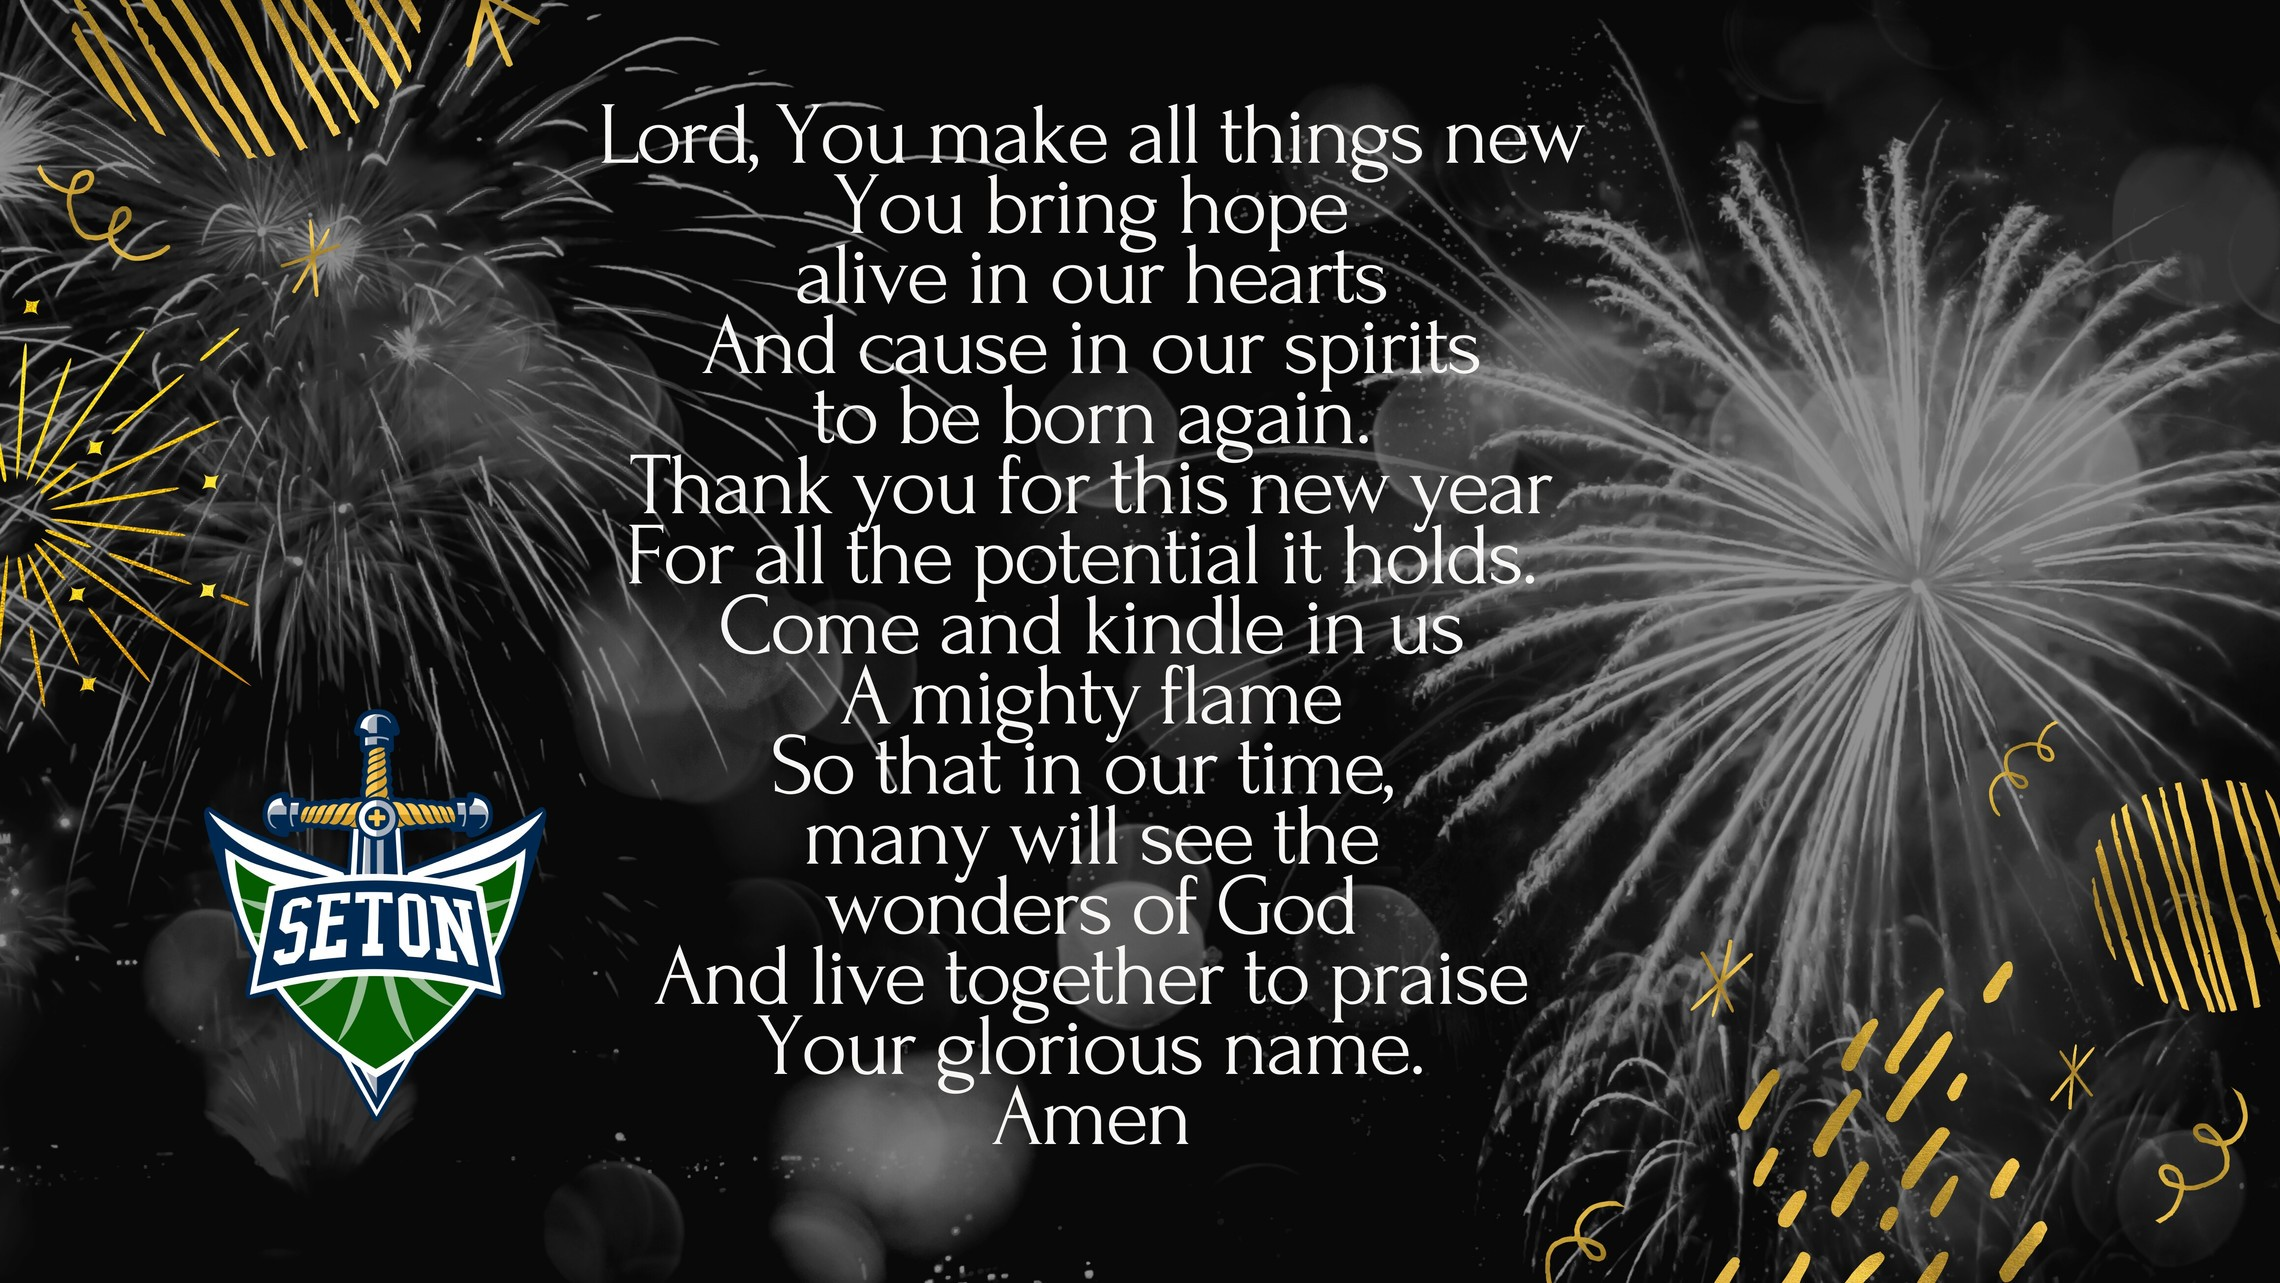 Lord You Make All Things Newyou Bring Hopealive In Our Heartsand Cause In Our Spiritsto Be Born Again.thank You For This New Yearfor All The Potential It Holds. Come And Kindle In Usa Mighty Flameso That In Our Time